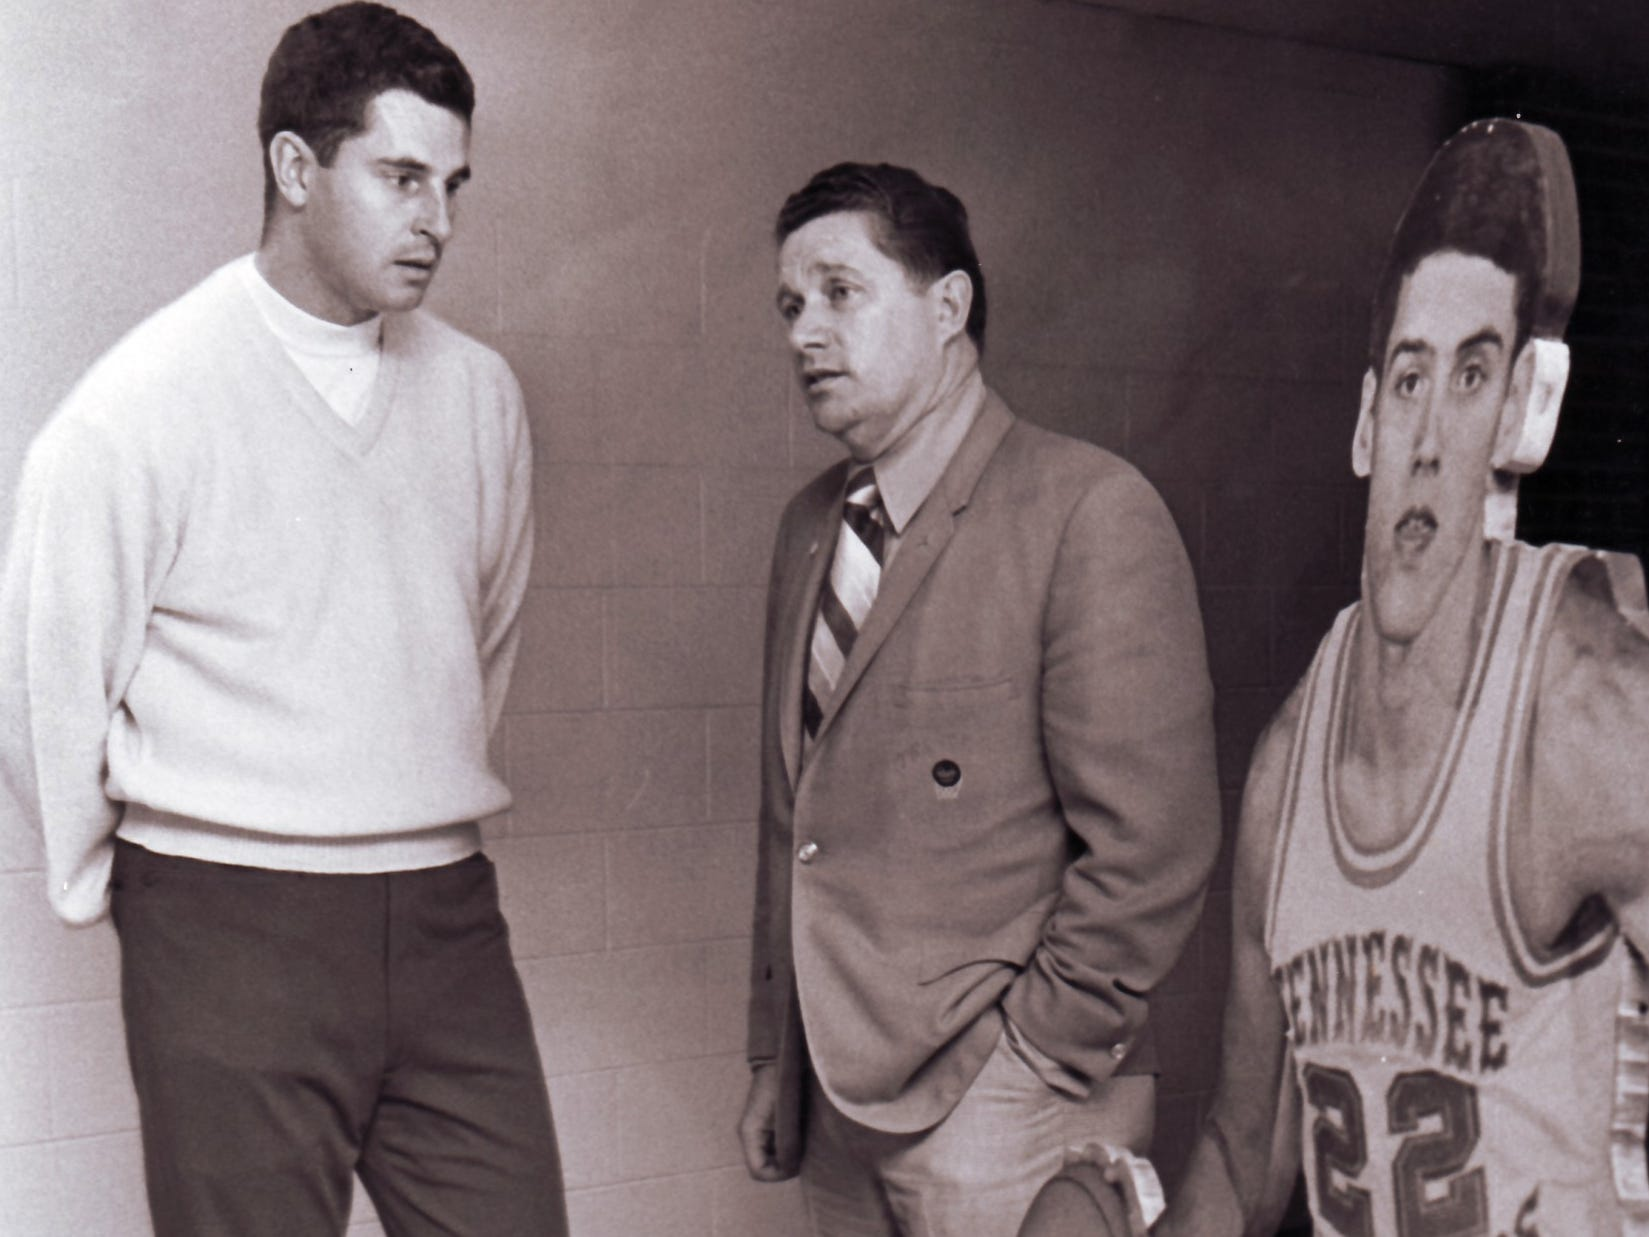 University of Tennessee basketball Coach Ray Mears, right, with Bobby Knight on Feb. 15, 1970.